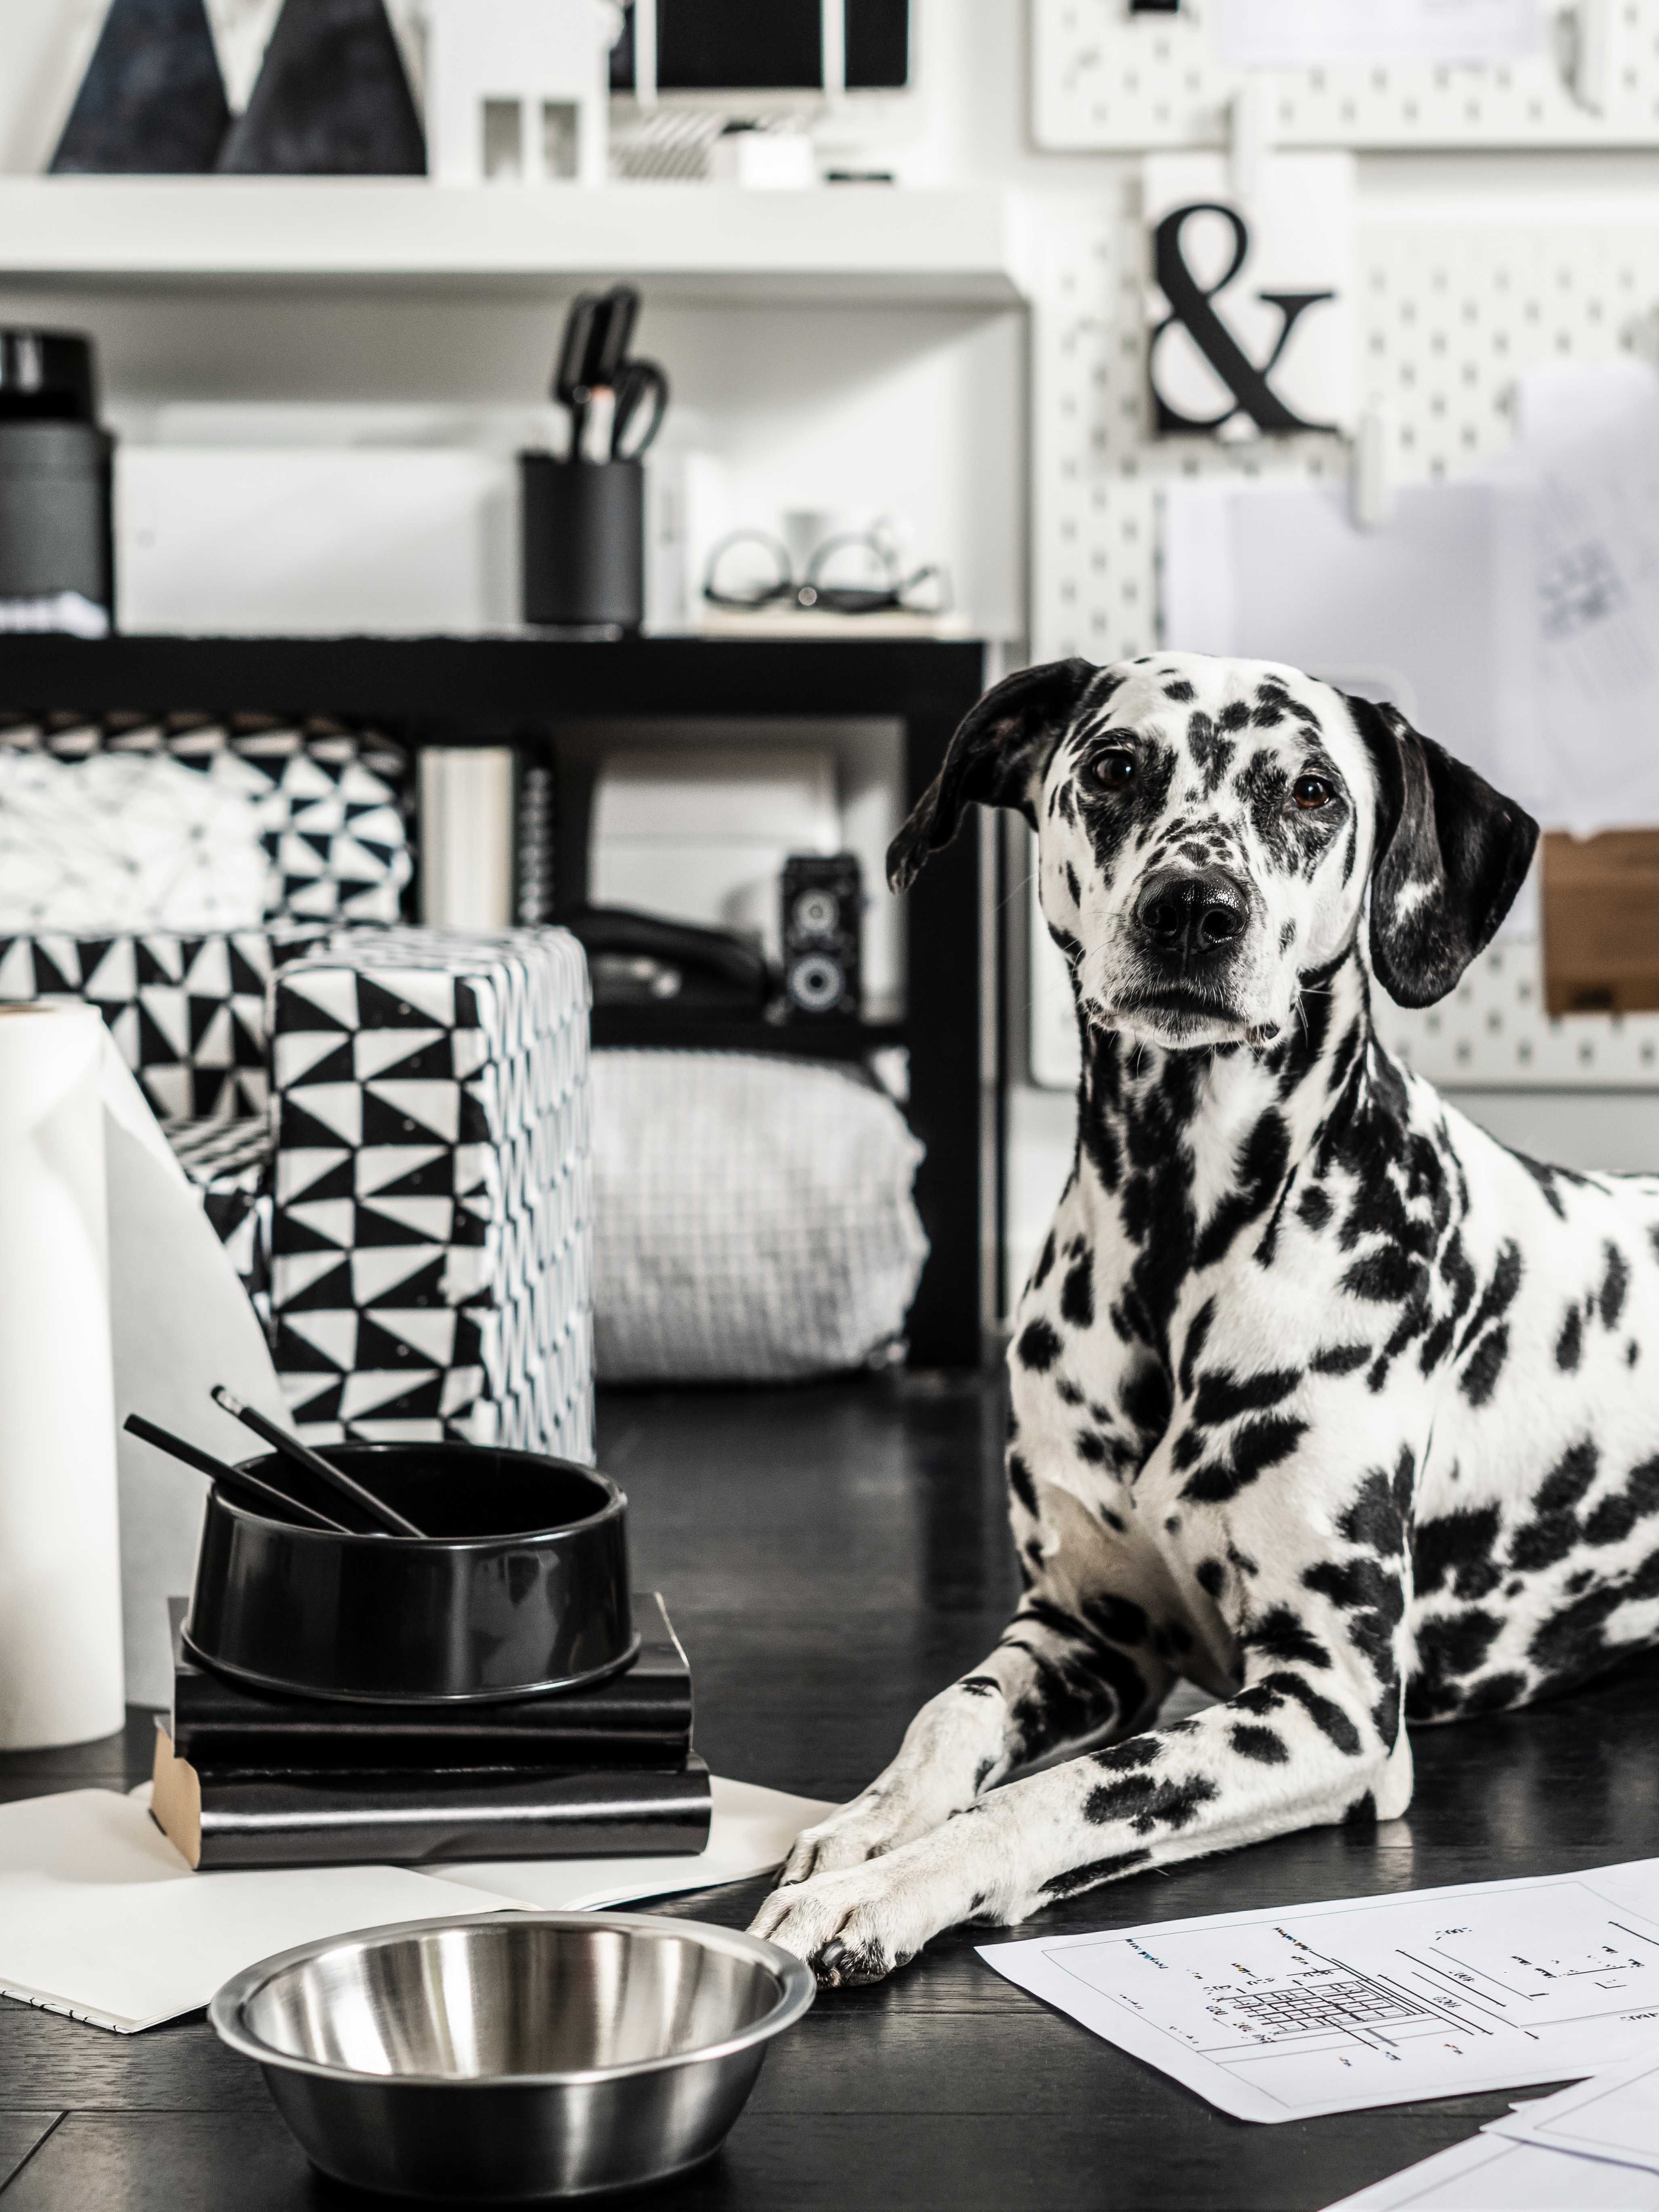 A Dalmatian dog lying next to LURVIG bowls in stainless steel and polypropylene plastic and a cat and dog bed with cover.